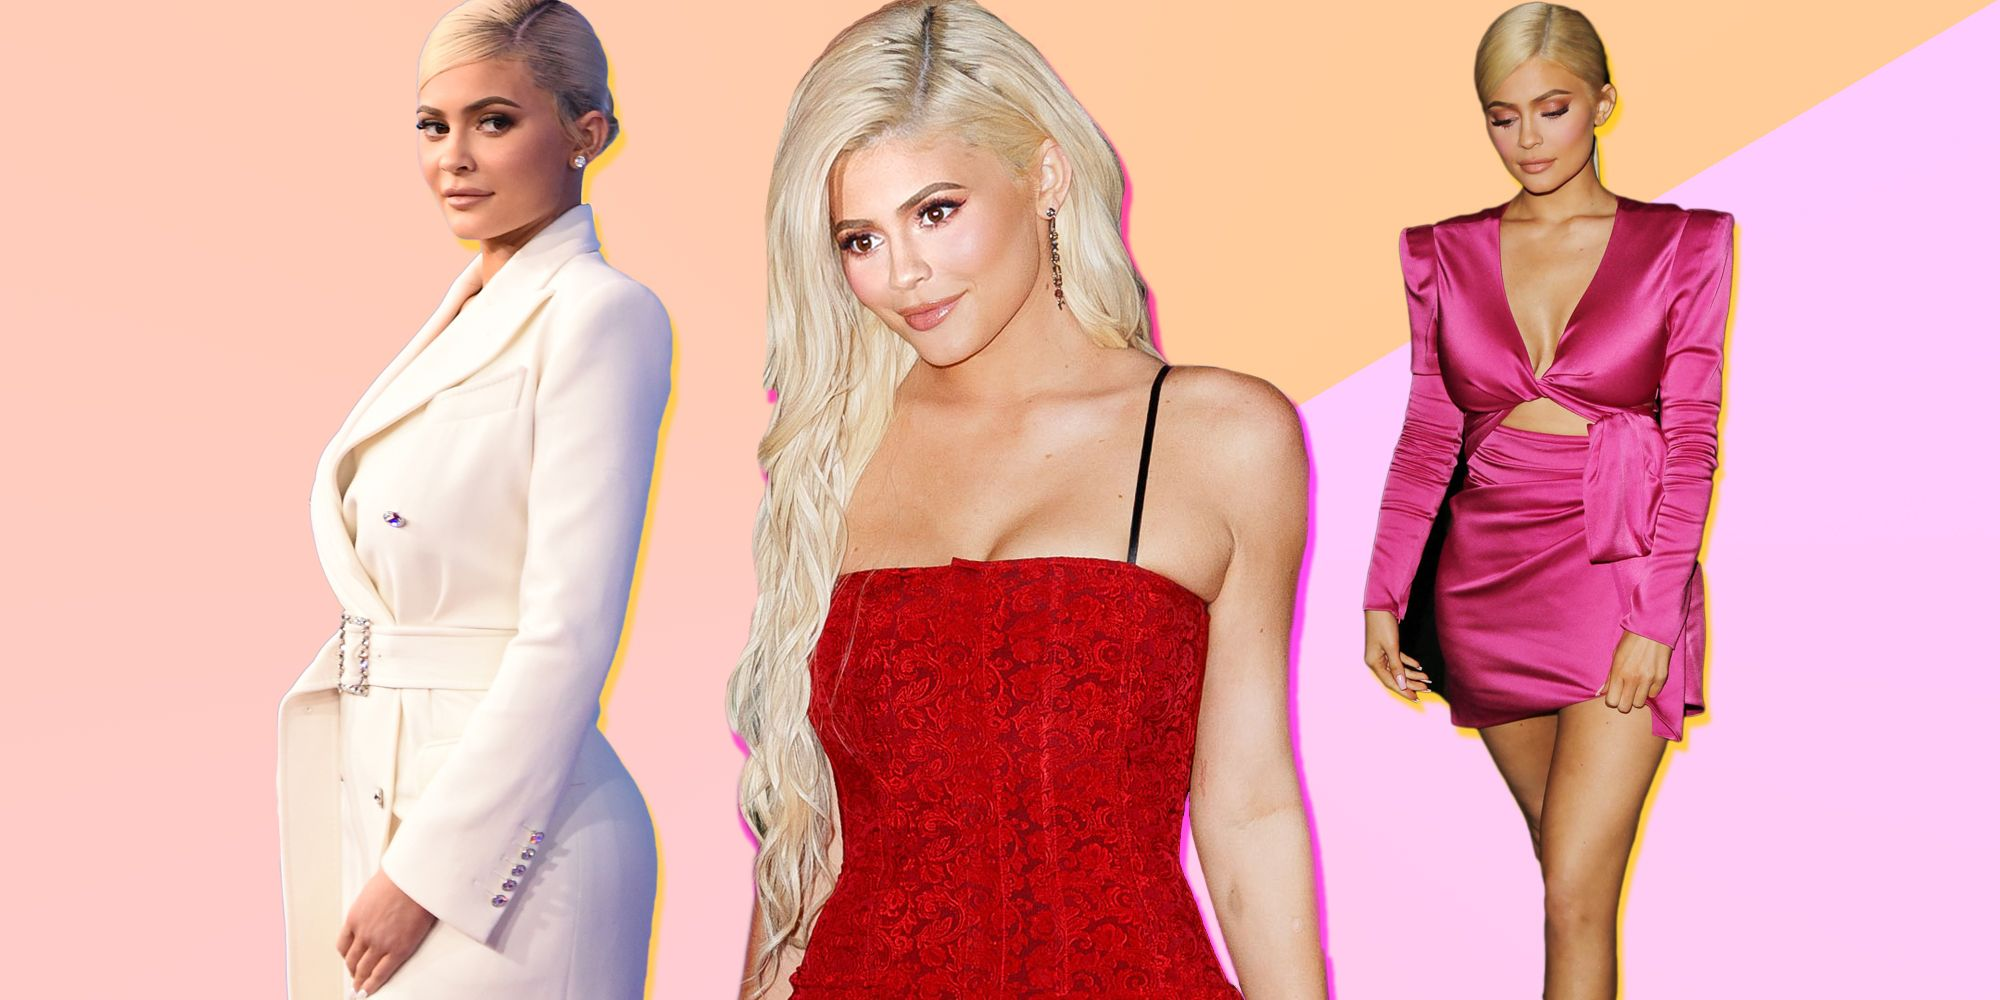 Kylie Jenner's best outfits